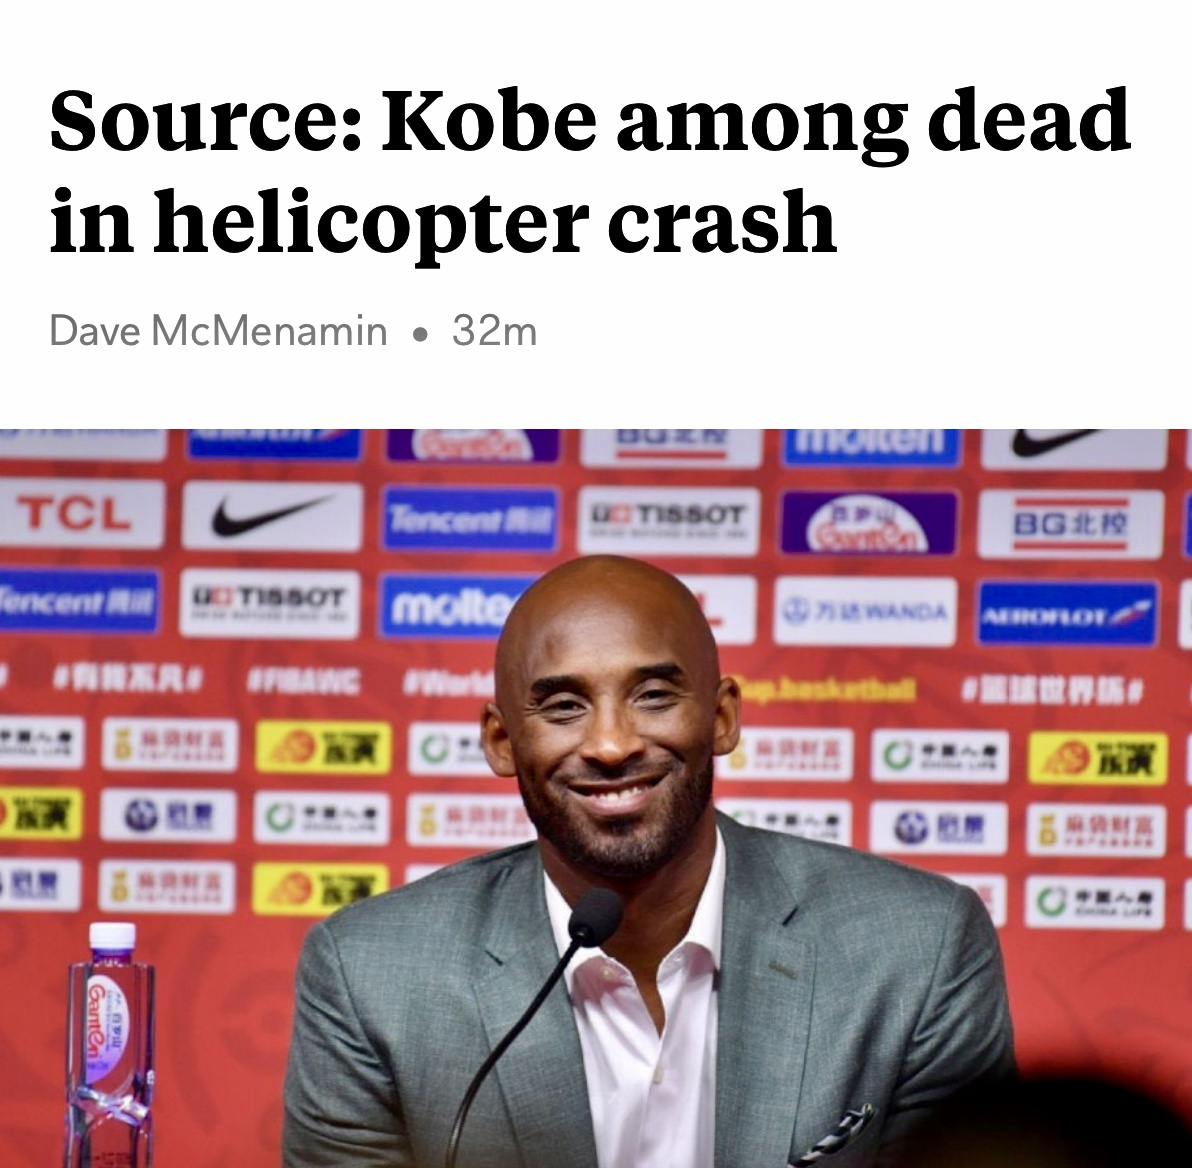 Kobe Bryant Has Died in Helicopter Crash